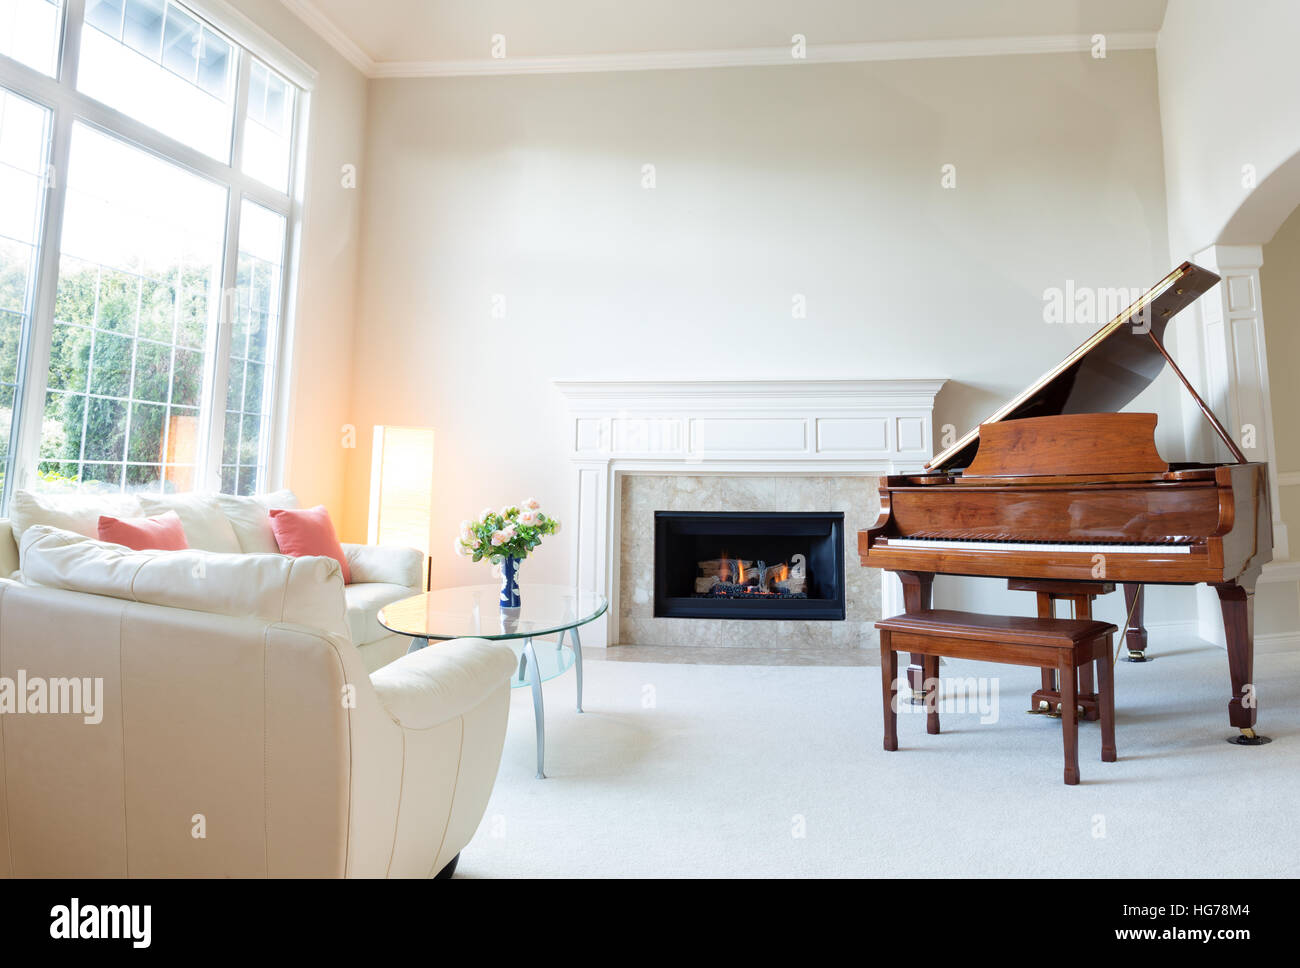 Grand Piano Living Room Stock Photos & Grand Piano Living Room Stock ...